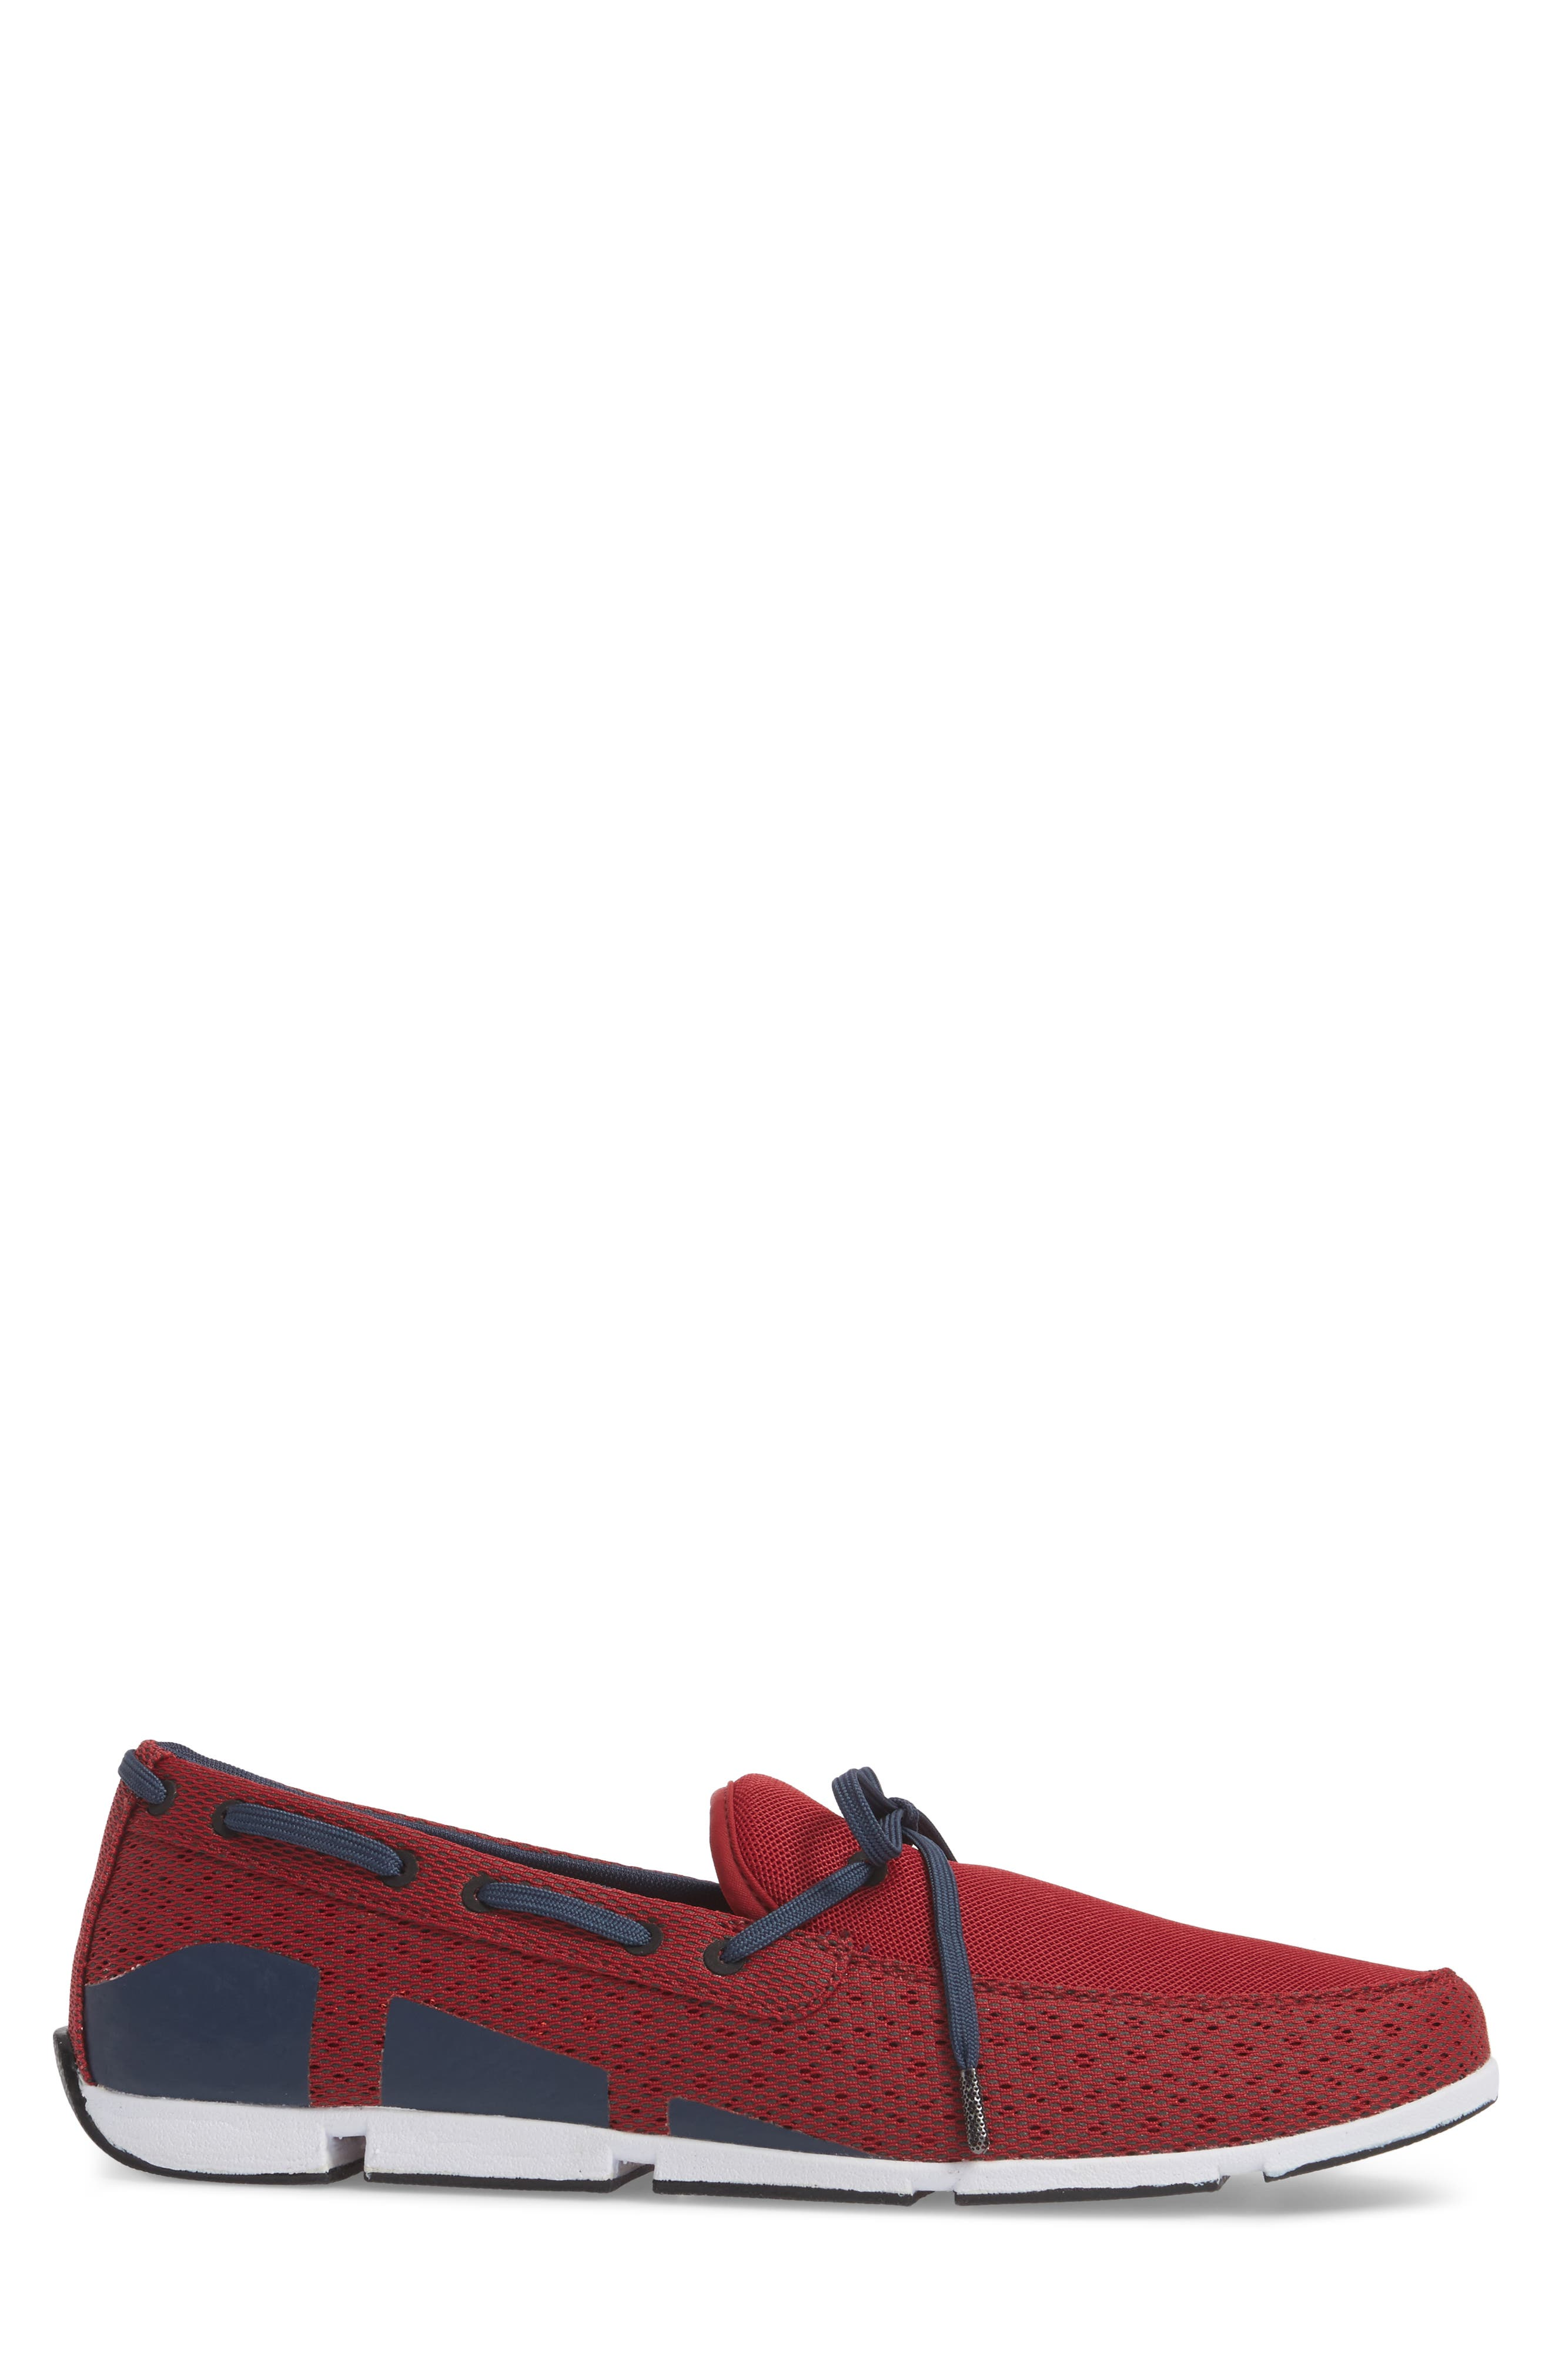 Alternate Image 3  - Swims Breeze Loafer (Men)